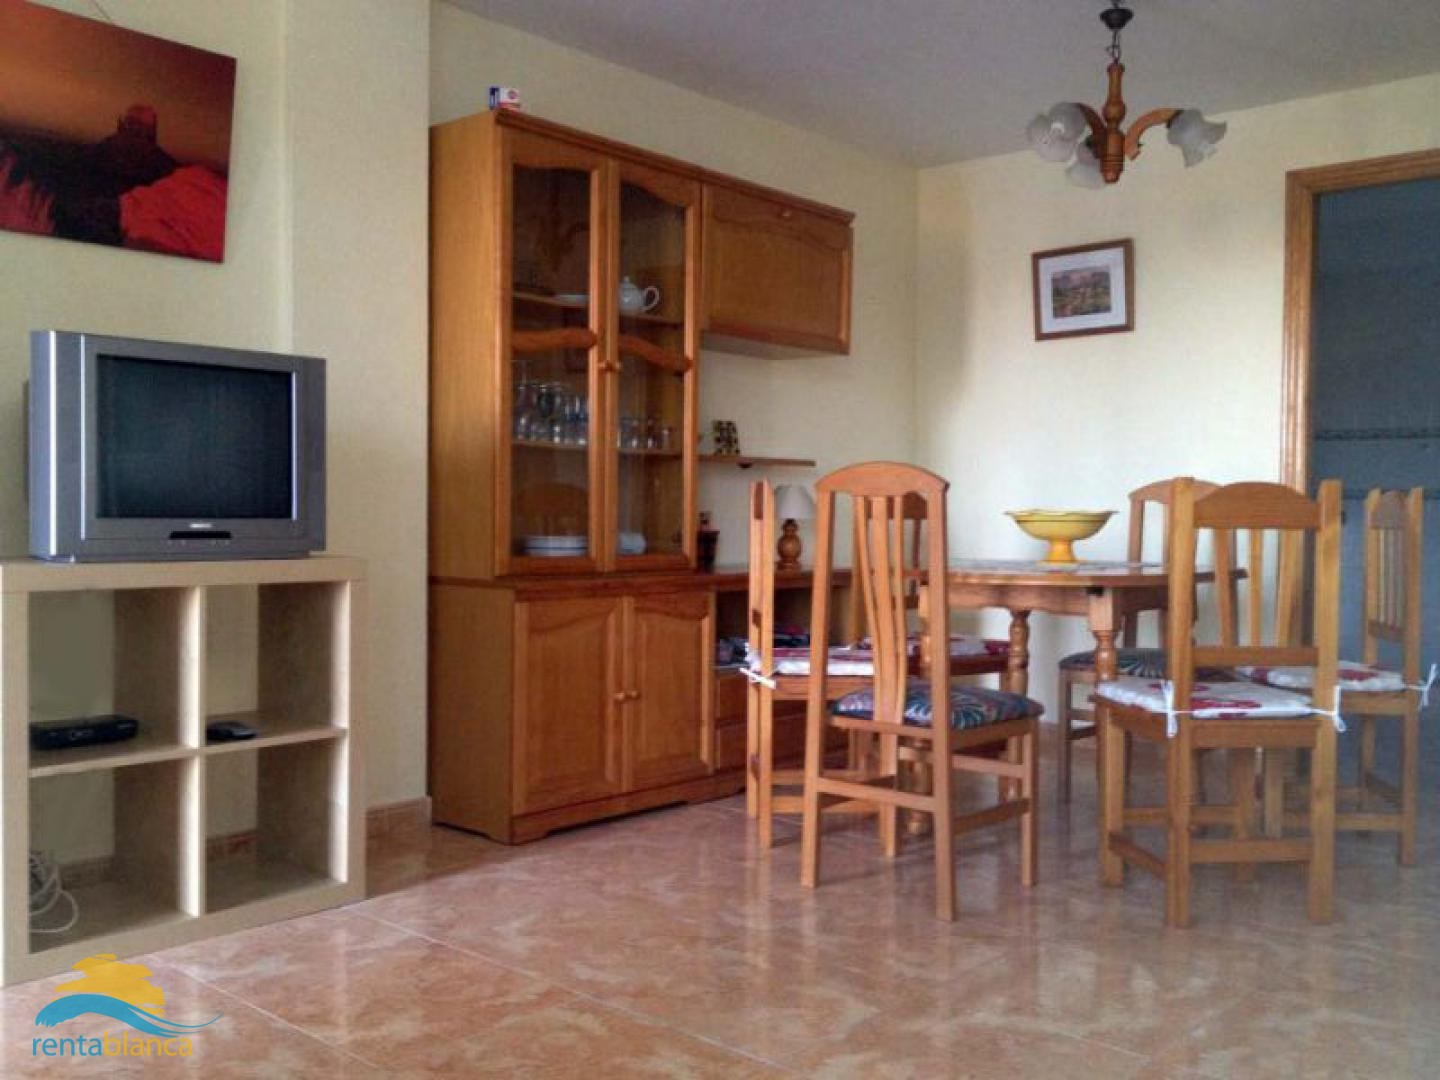 Holiday townhouse Altomar I - Gran Alacant  - Rentablanca